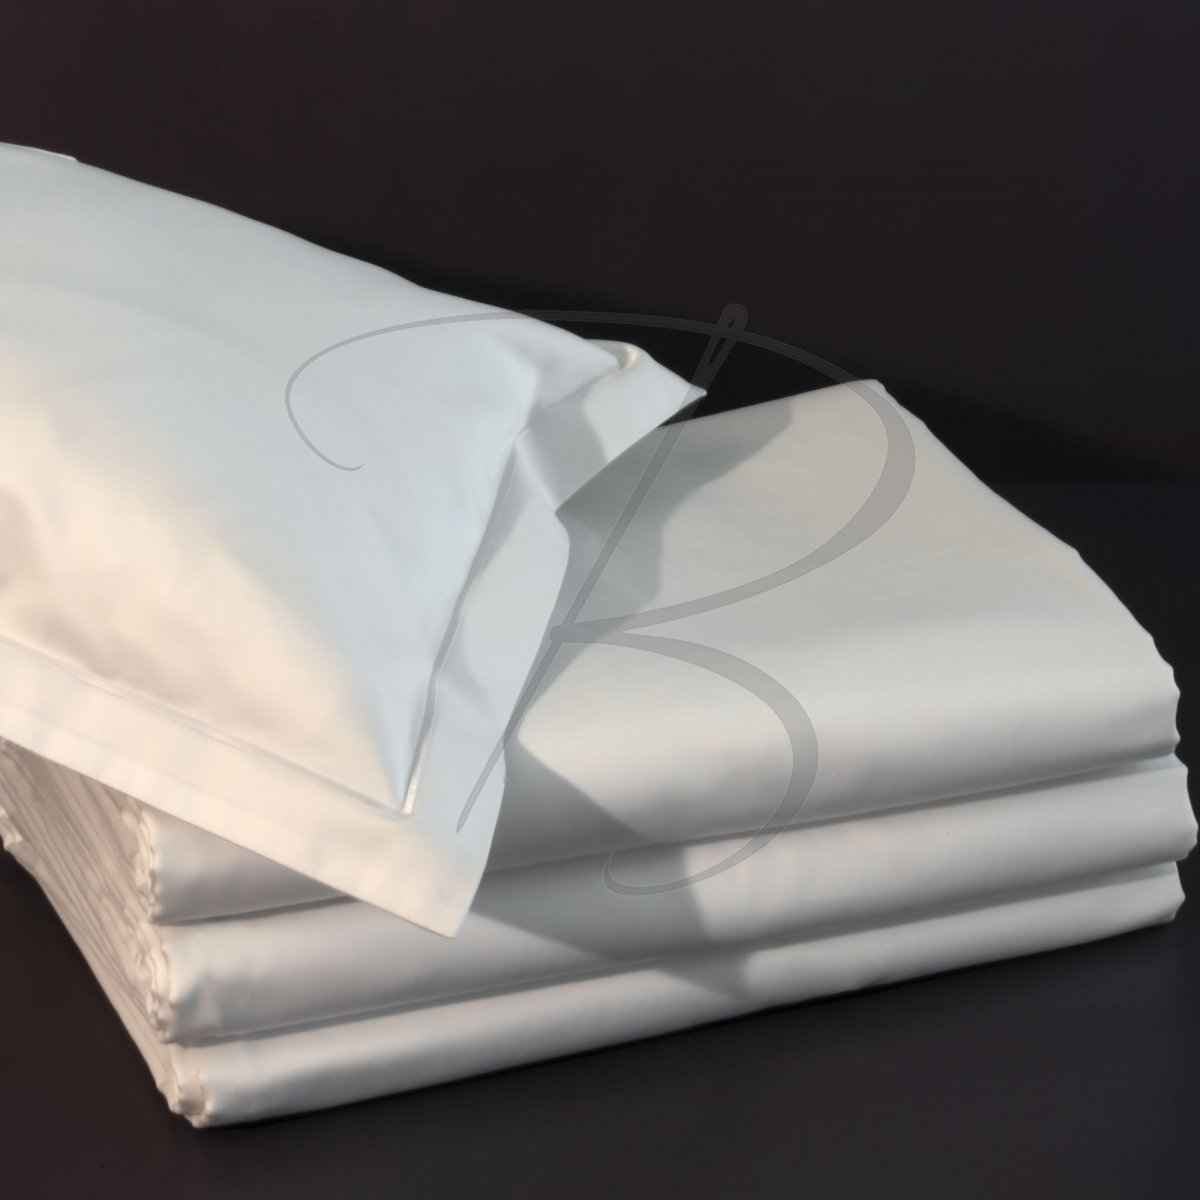 Cotton fitted sheet 400 - 140 x 200 - 140g/m² - 400TC